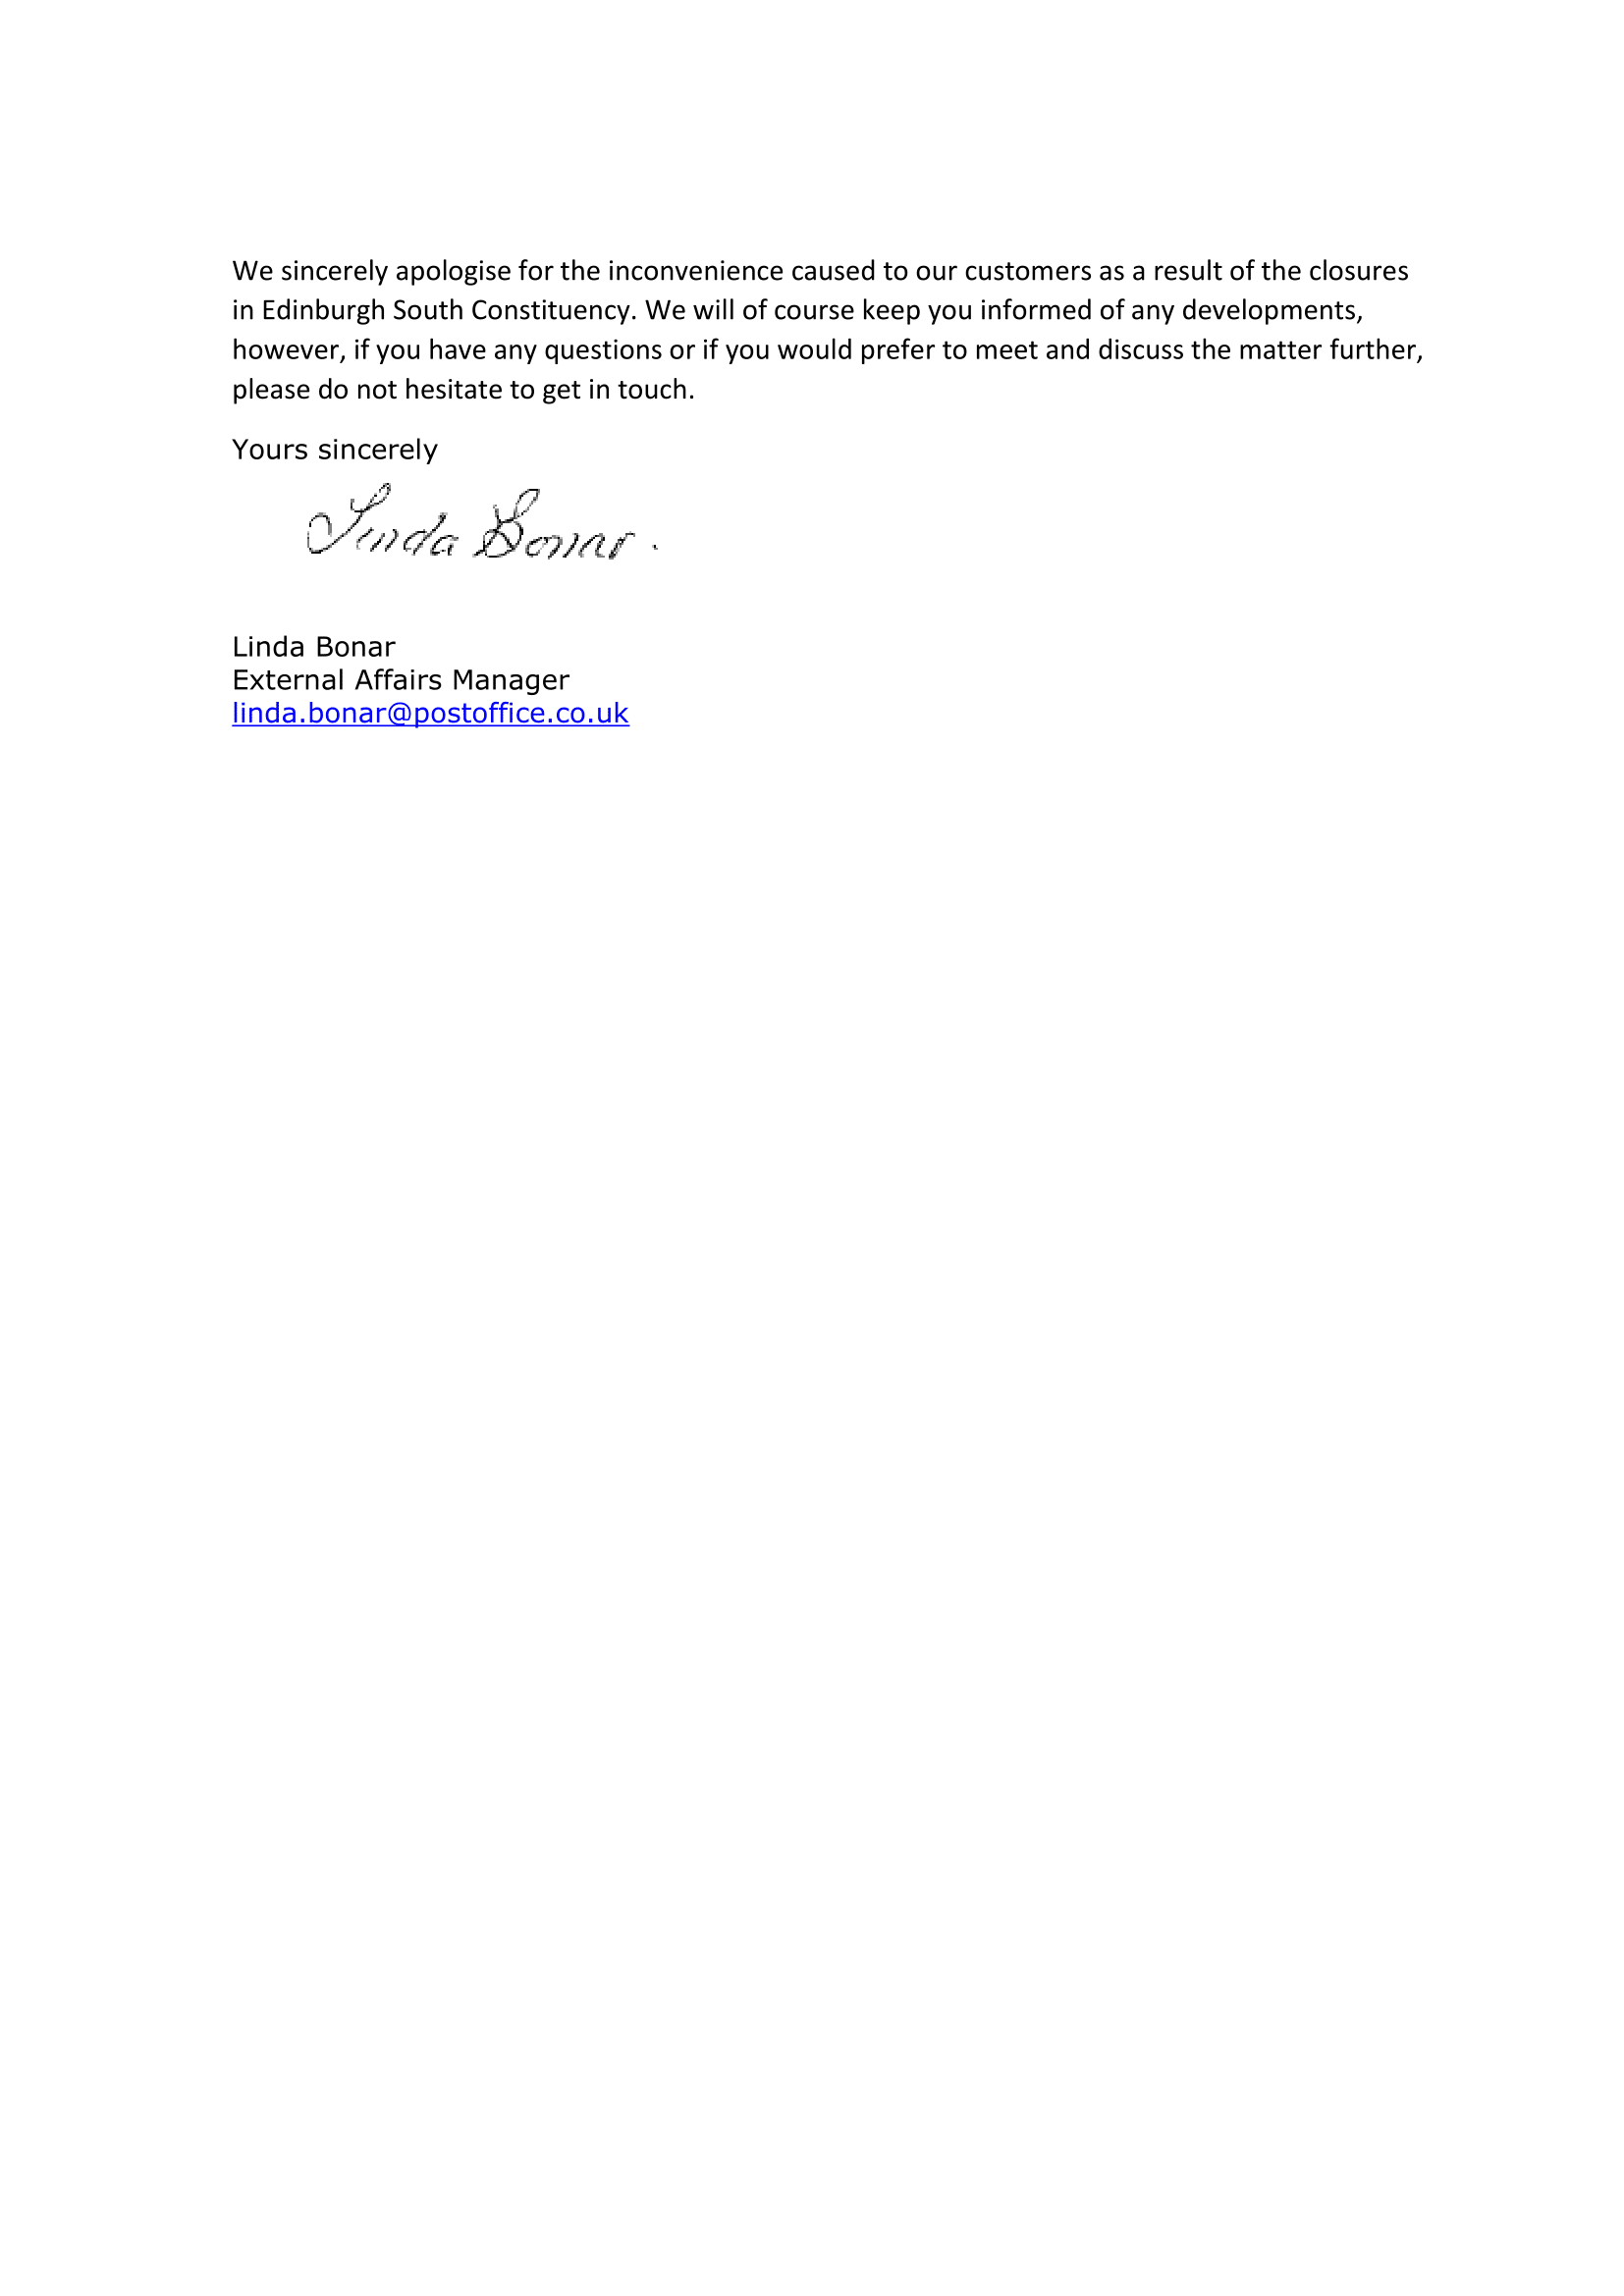 LB_letter_to_Ian_Murray_MP__Buckstone_Terrace_PO-2.png